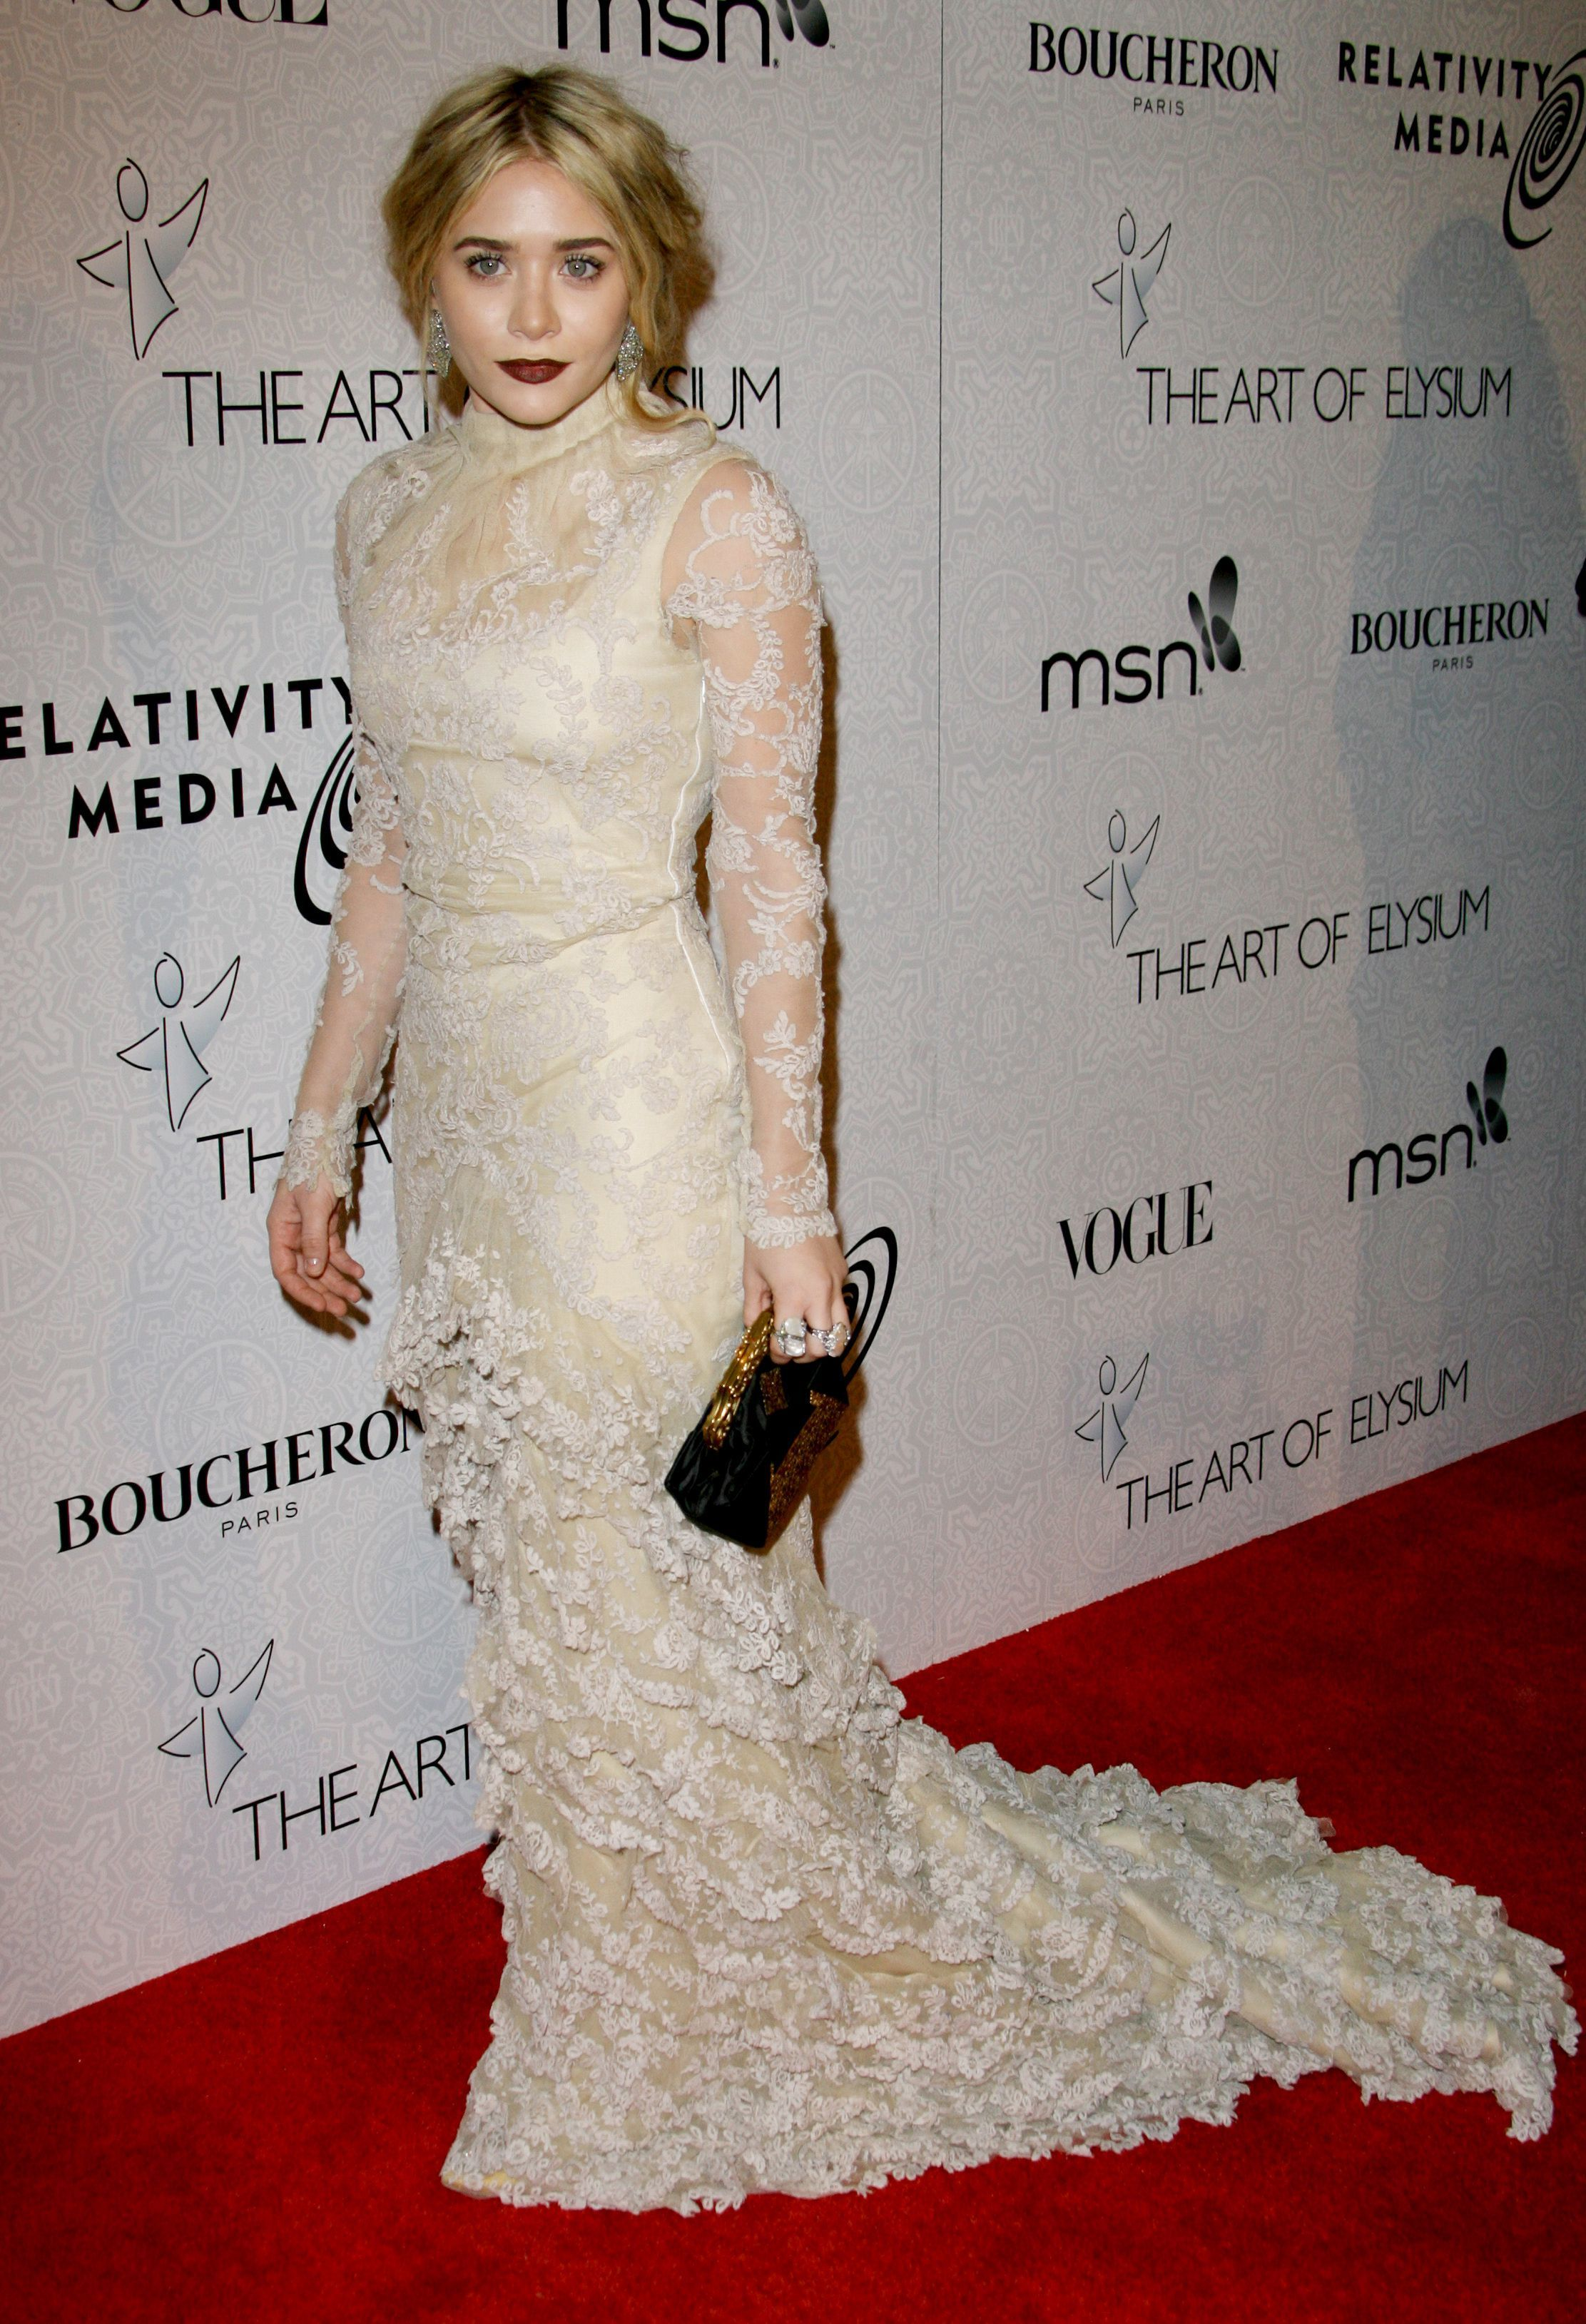 Ashley Olsen attends The Art of Elysium's 3rd Annual Black Tie Gala 'Heaven' in Beverly Hills on Jan. 16, 2010.